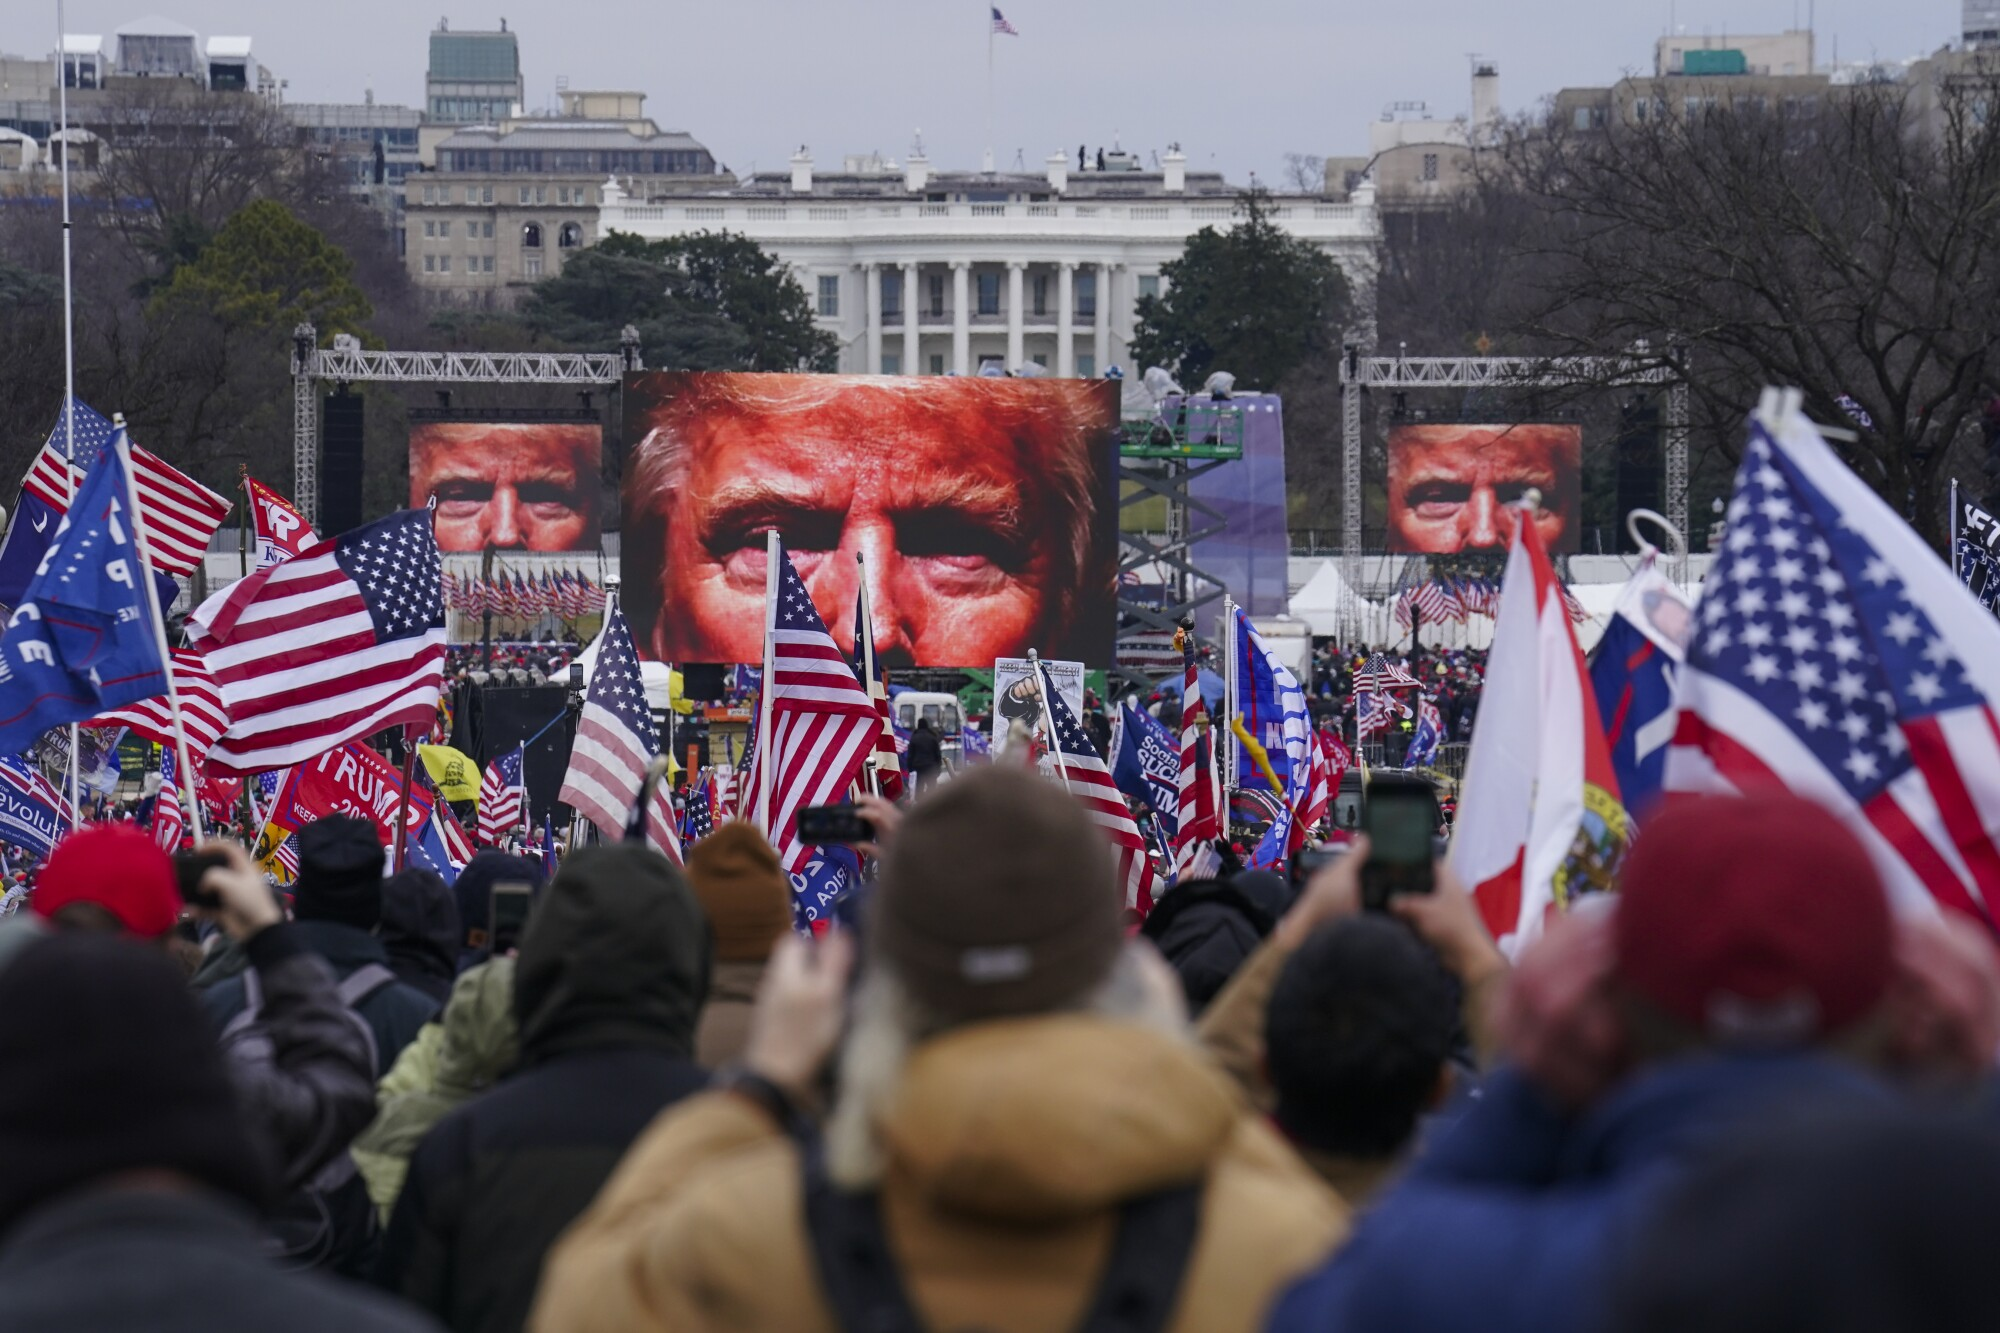 Trump supporters participate in a rally in Washington